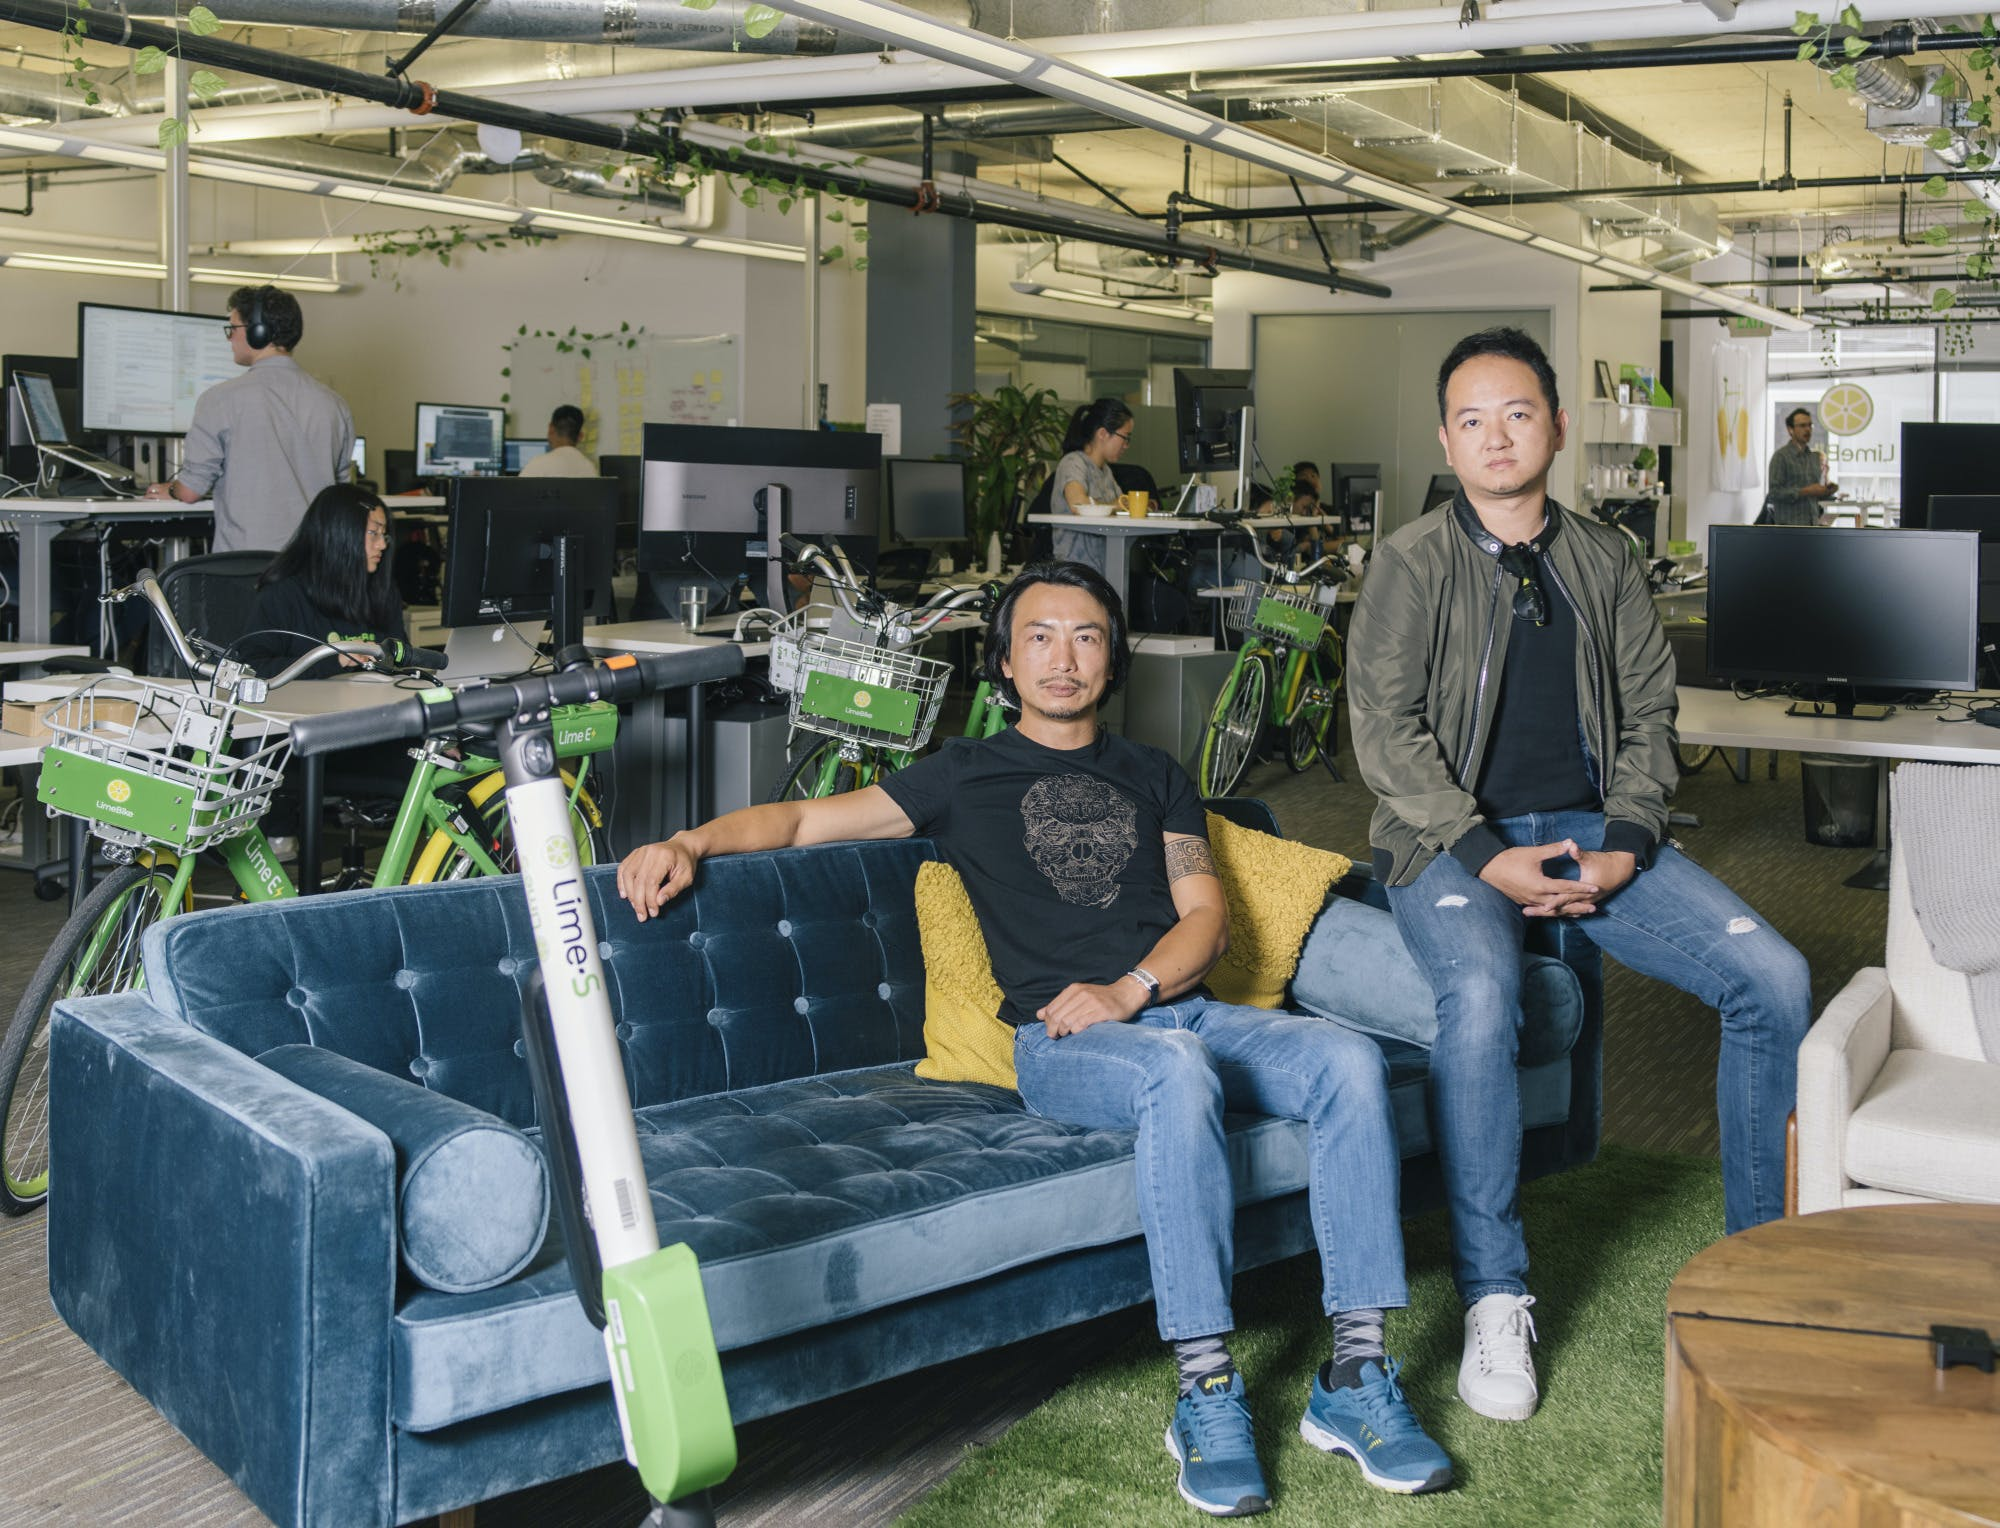 TOBY SUN: THE CEO AND CO-FOUNDER OF LIMEBIKE, A SMART DOCK-LESS BIKE SHARE SYSTEM